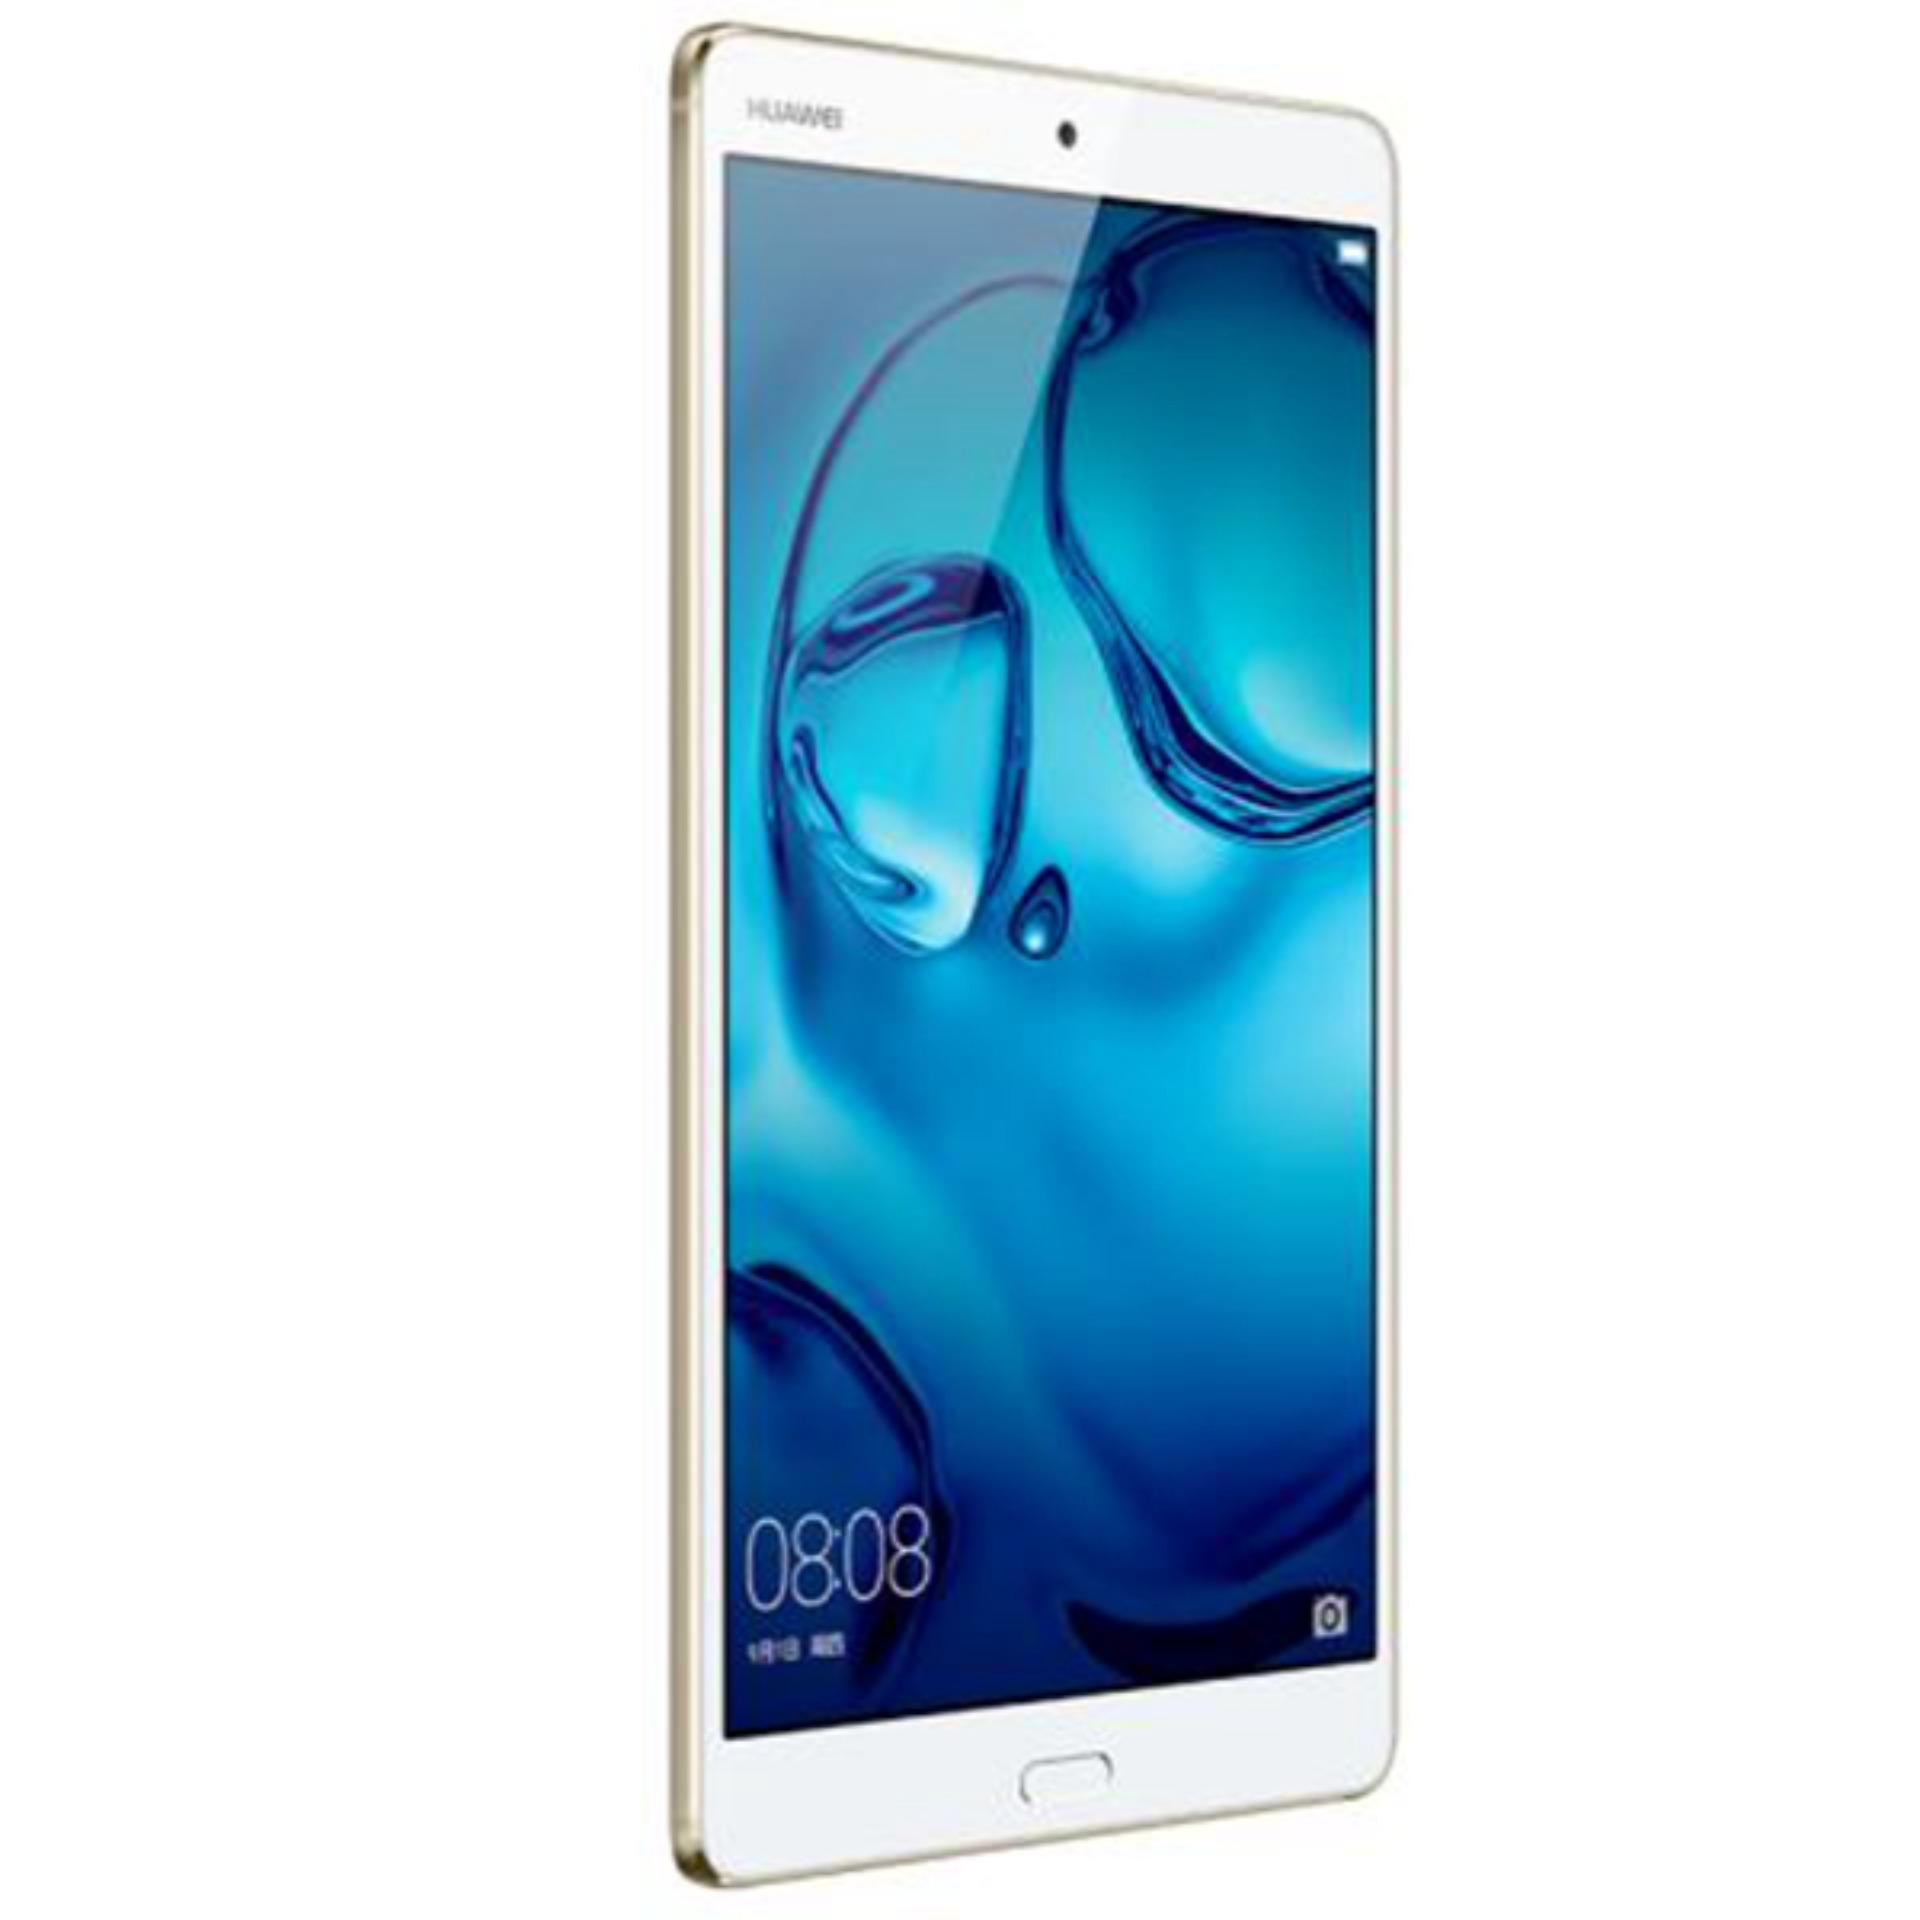 Huawei MediaPad M3 BTV-W09 Octa Core WIFI version 4G+32G/64G/128G 8.4 inch Dual camera 8MP+8MP